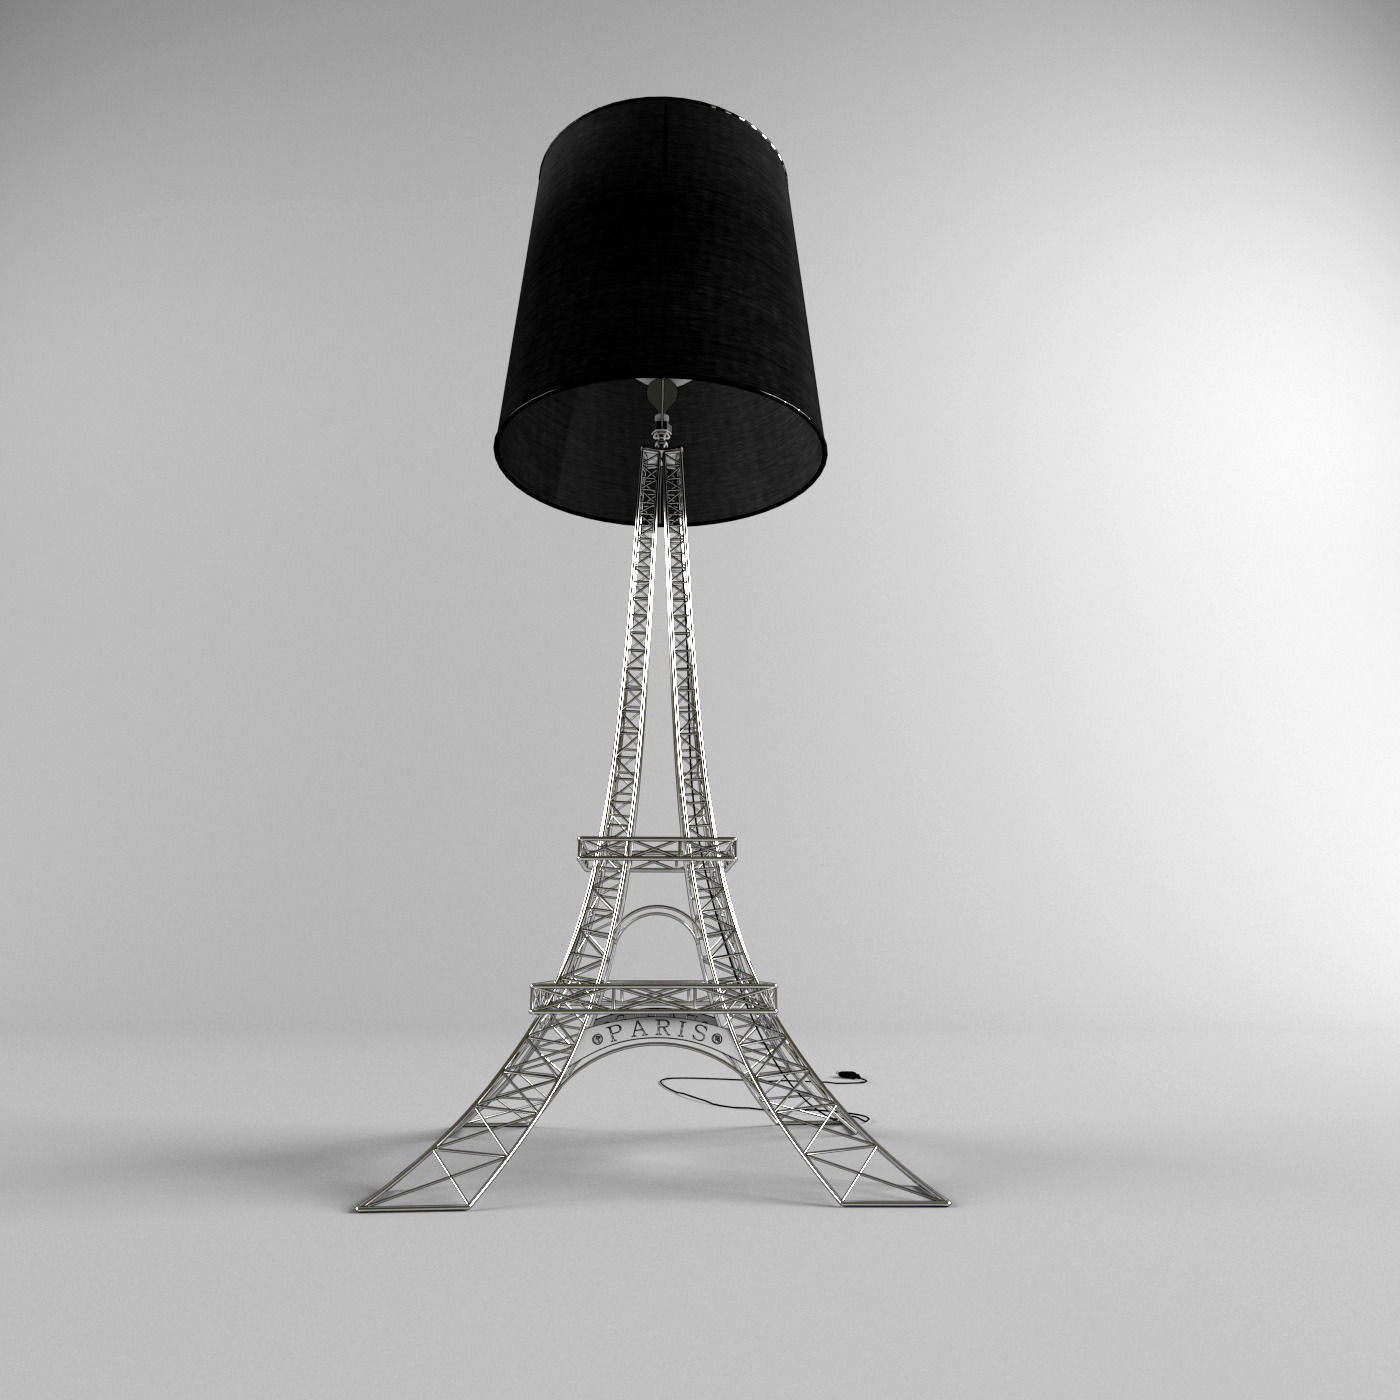 ... Eiffel Tower Lamp 3d Model Max Fbx 3 ...